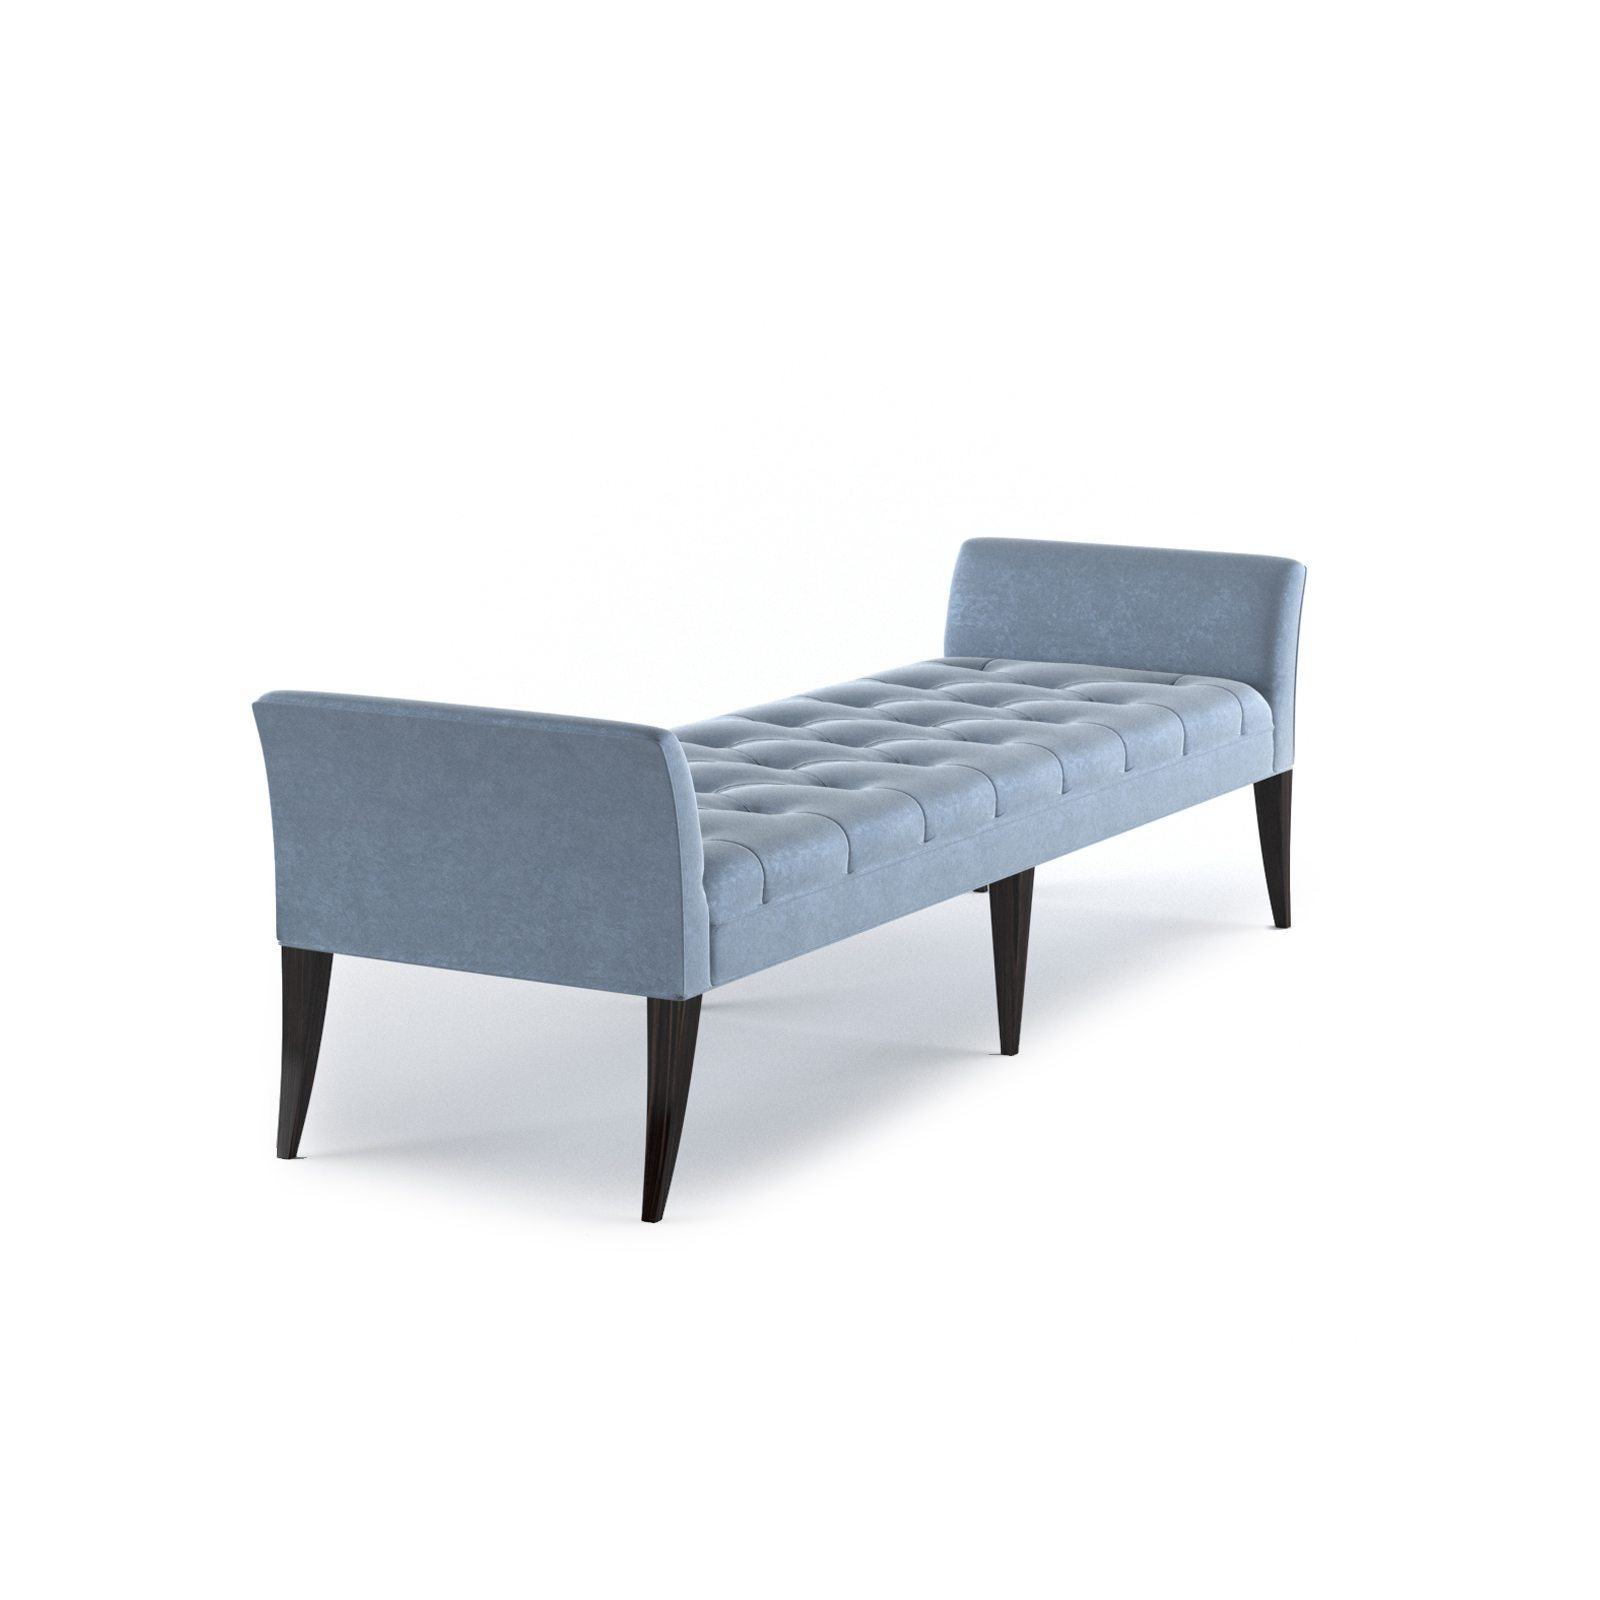 Altman Bench 02 by Bonham & Bonham 05